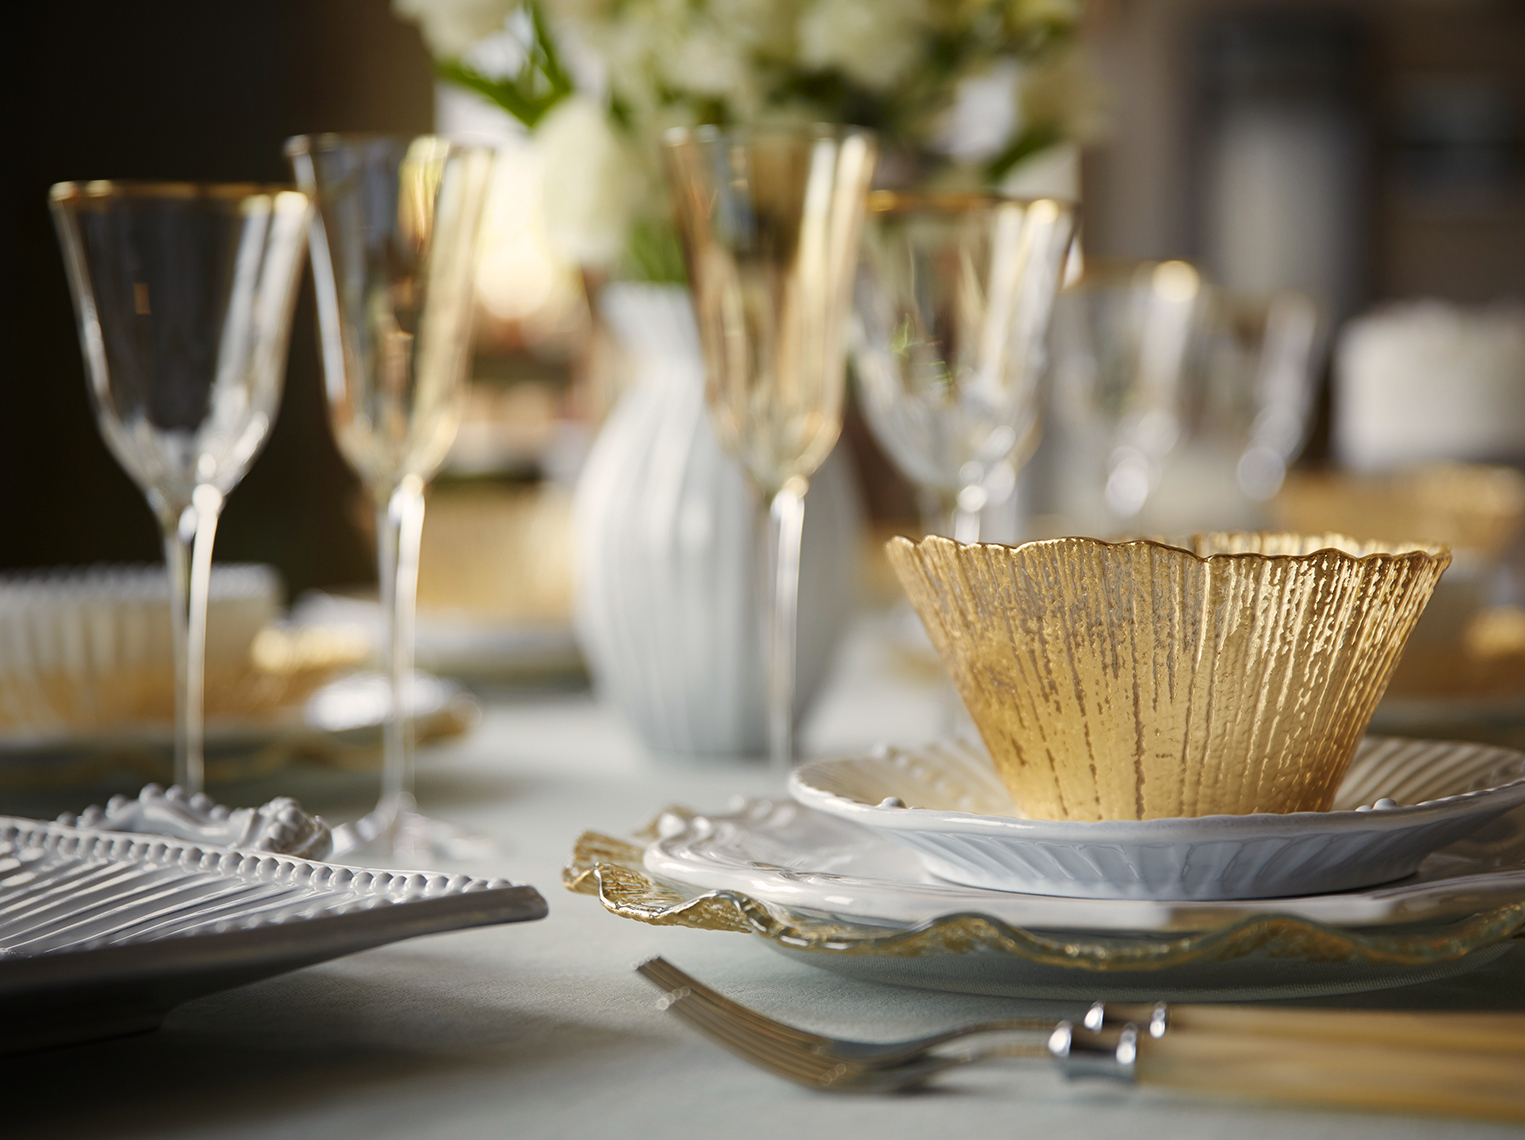 Table setting close up